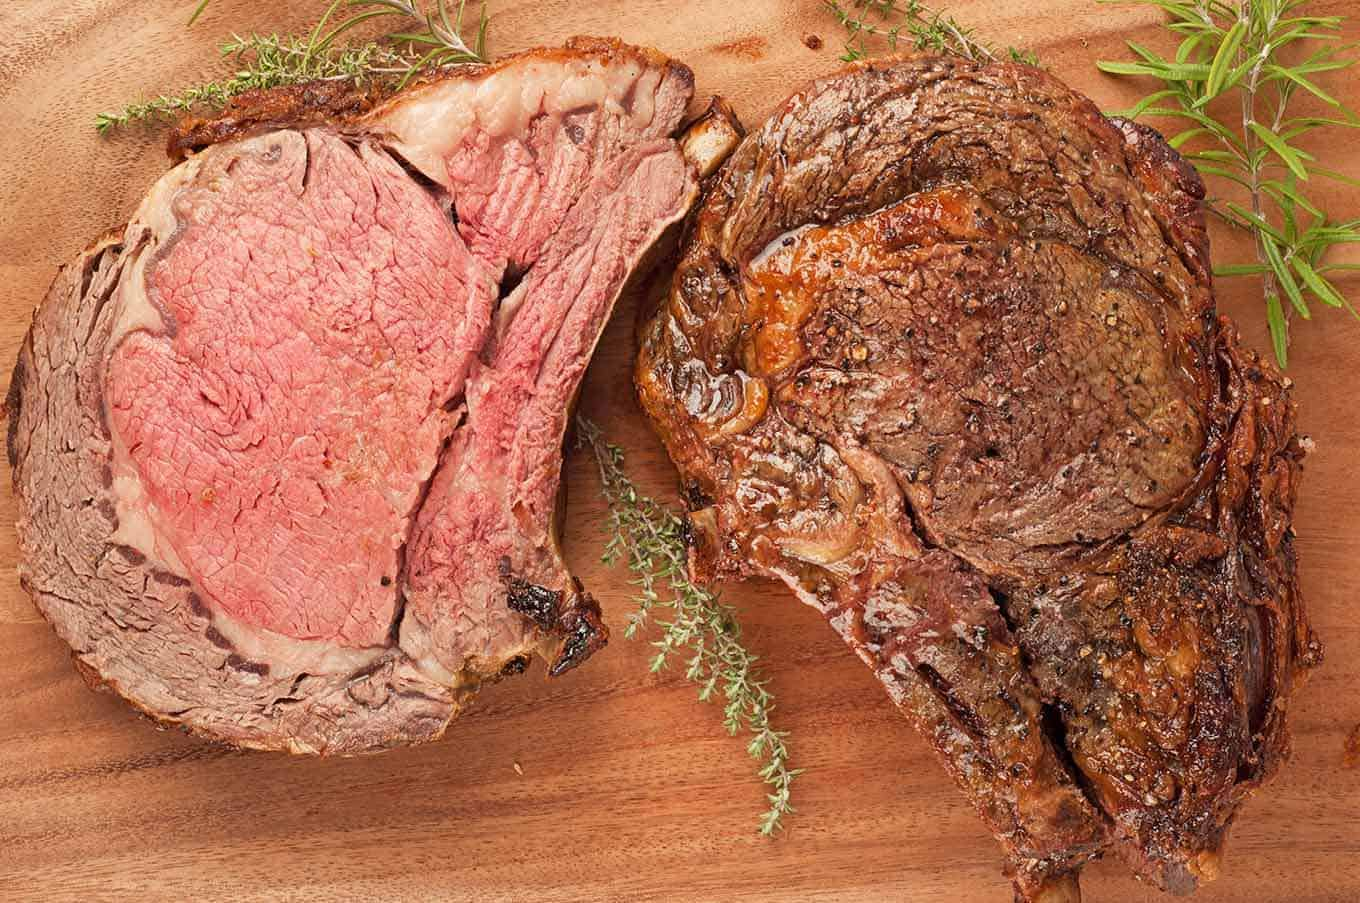 Prime rib standing beef roast sliced with herbs.